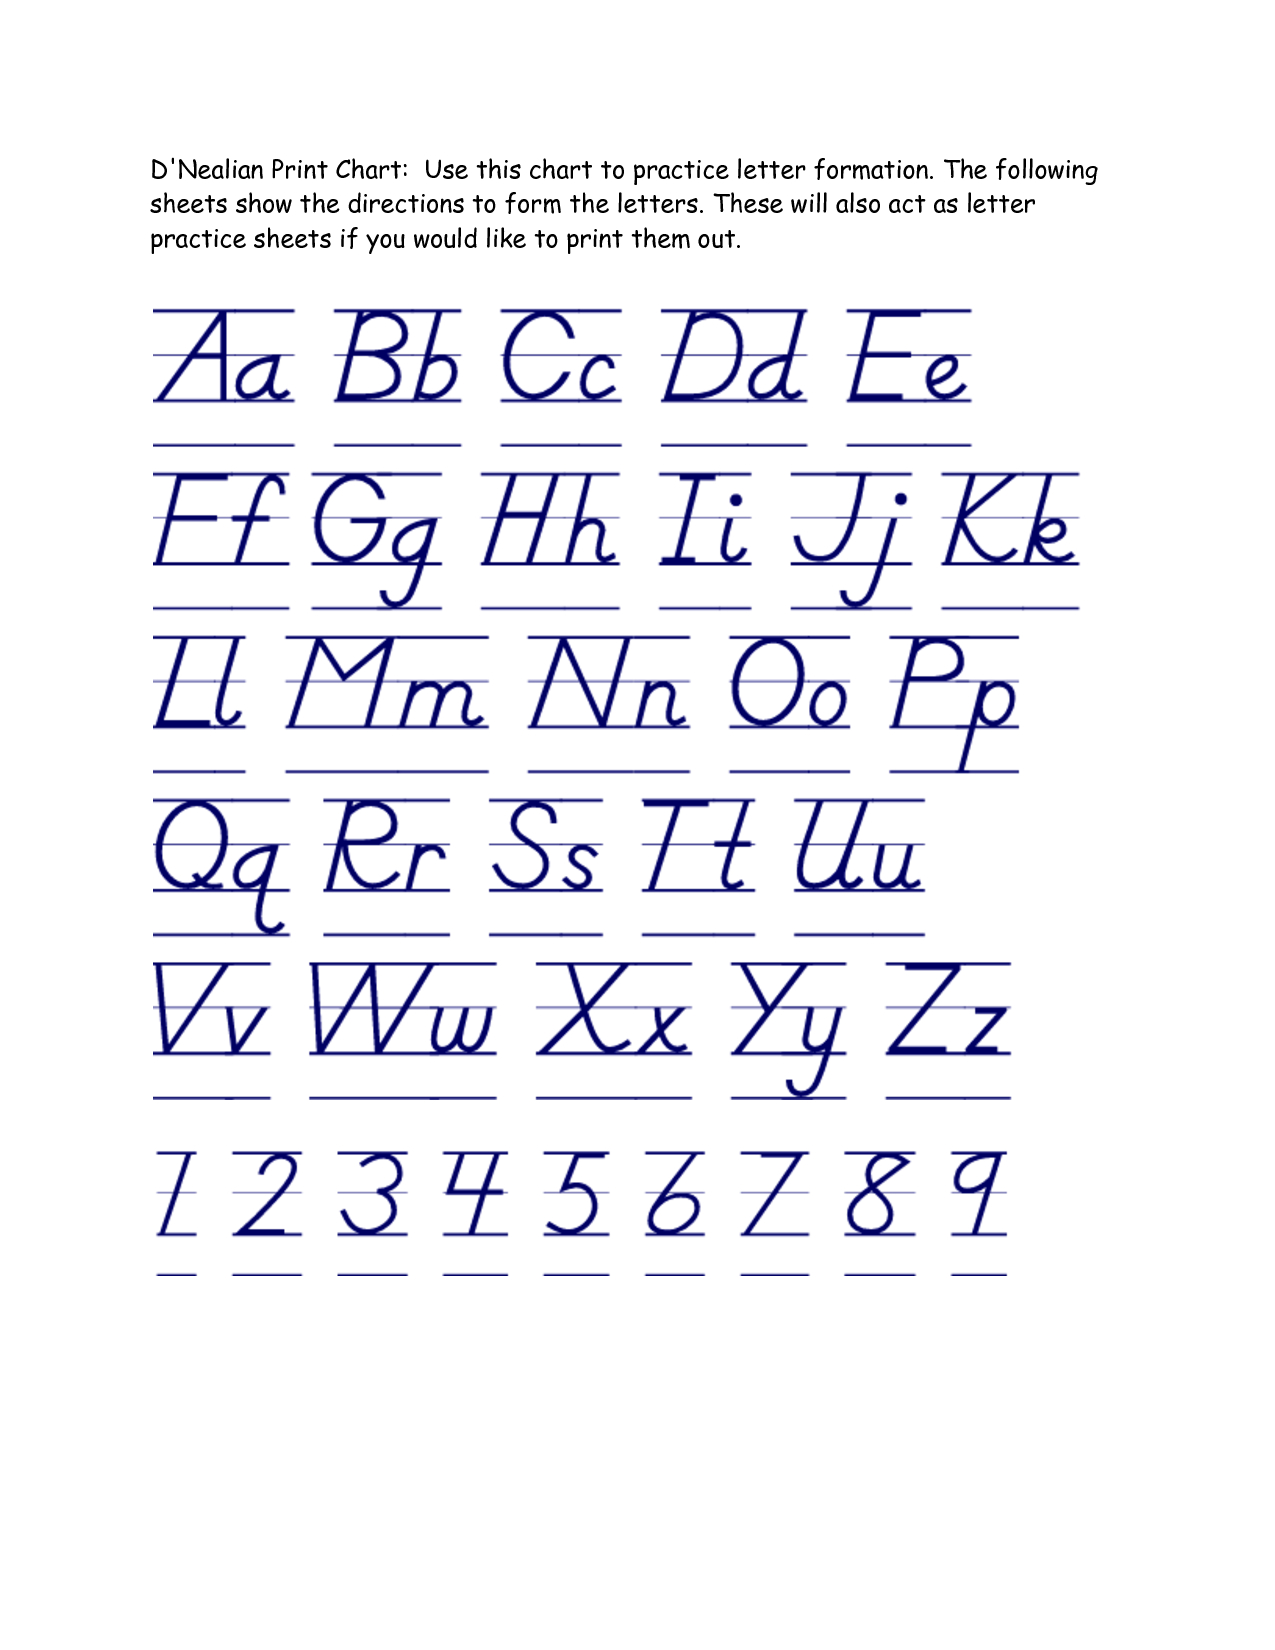 D Nealian Alphabet Tracing Worksheets